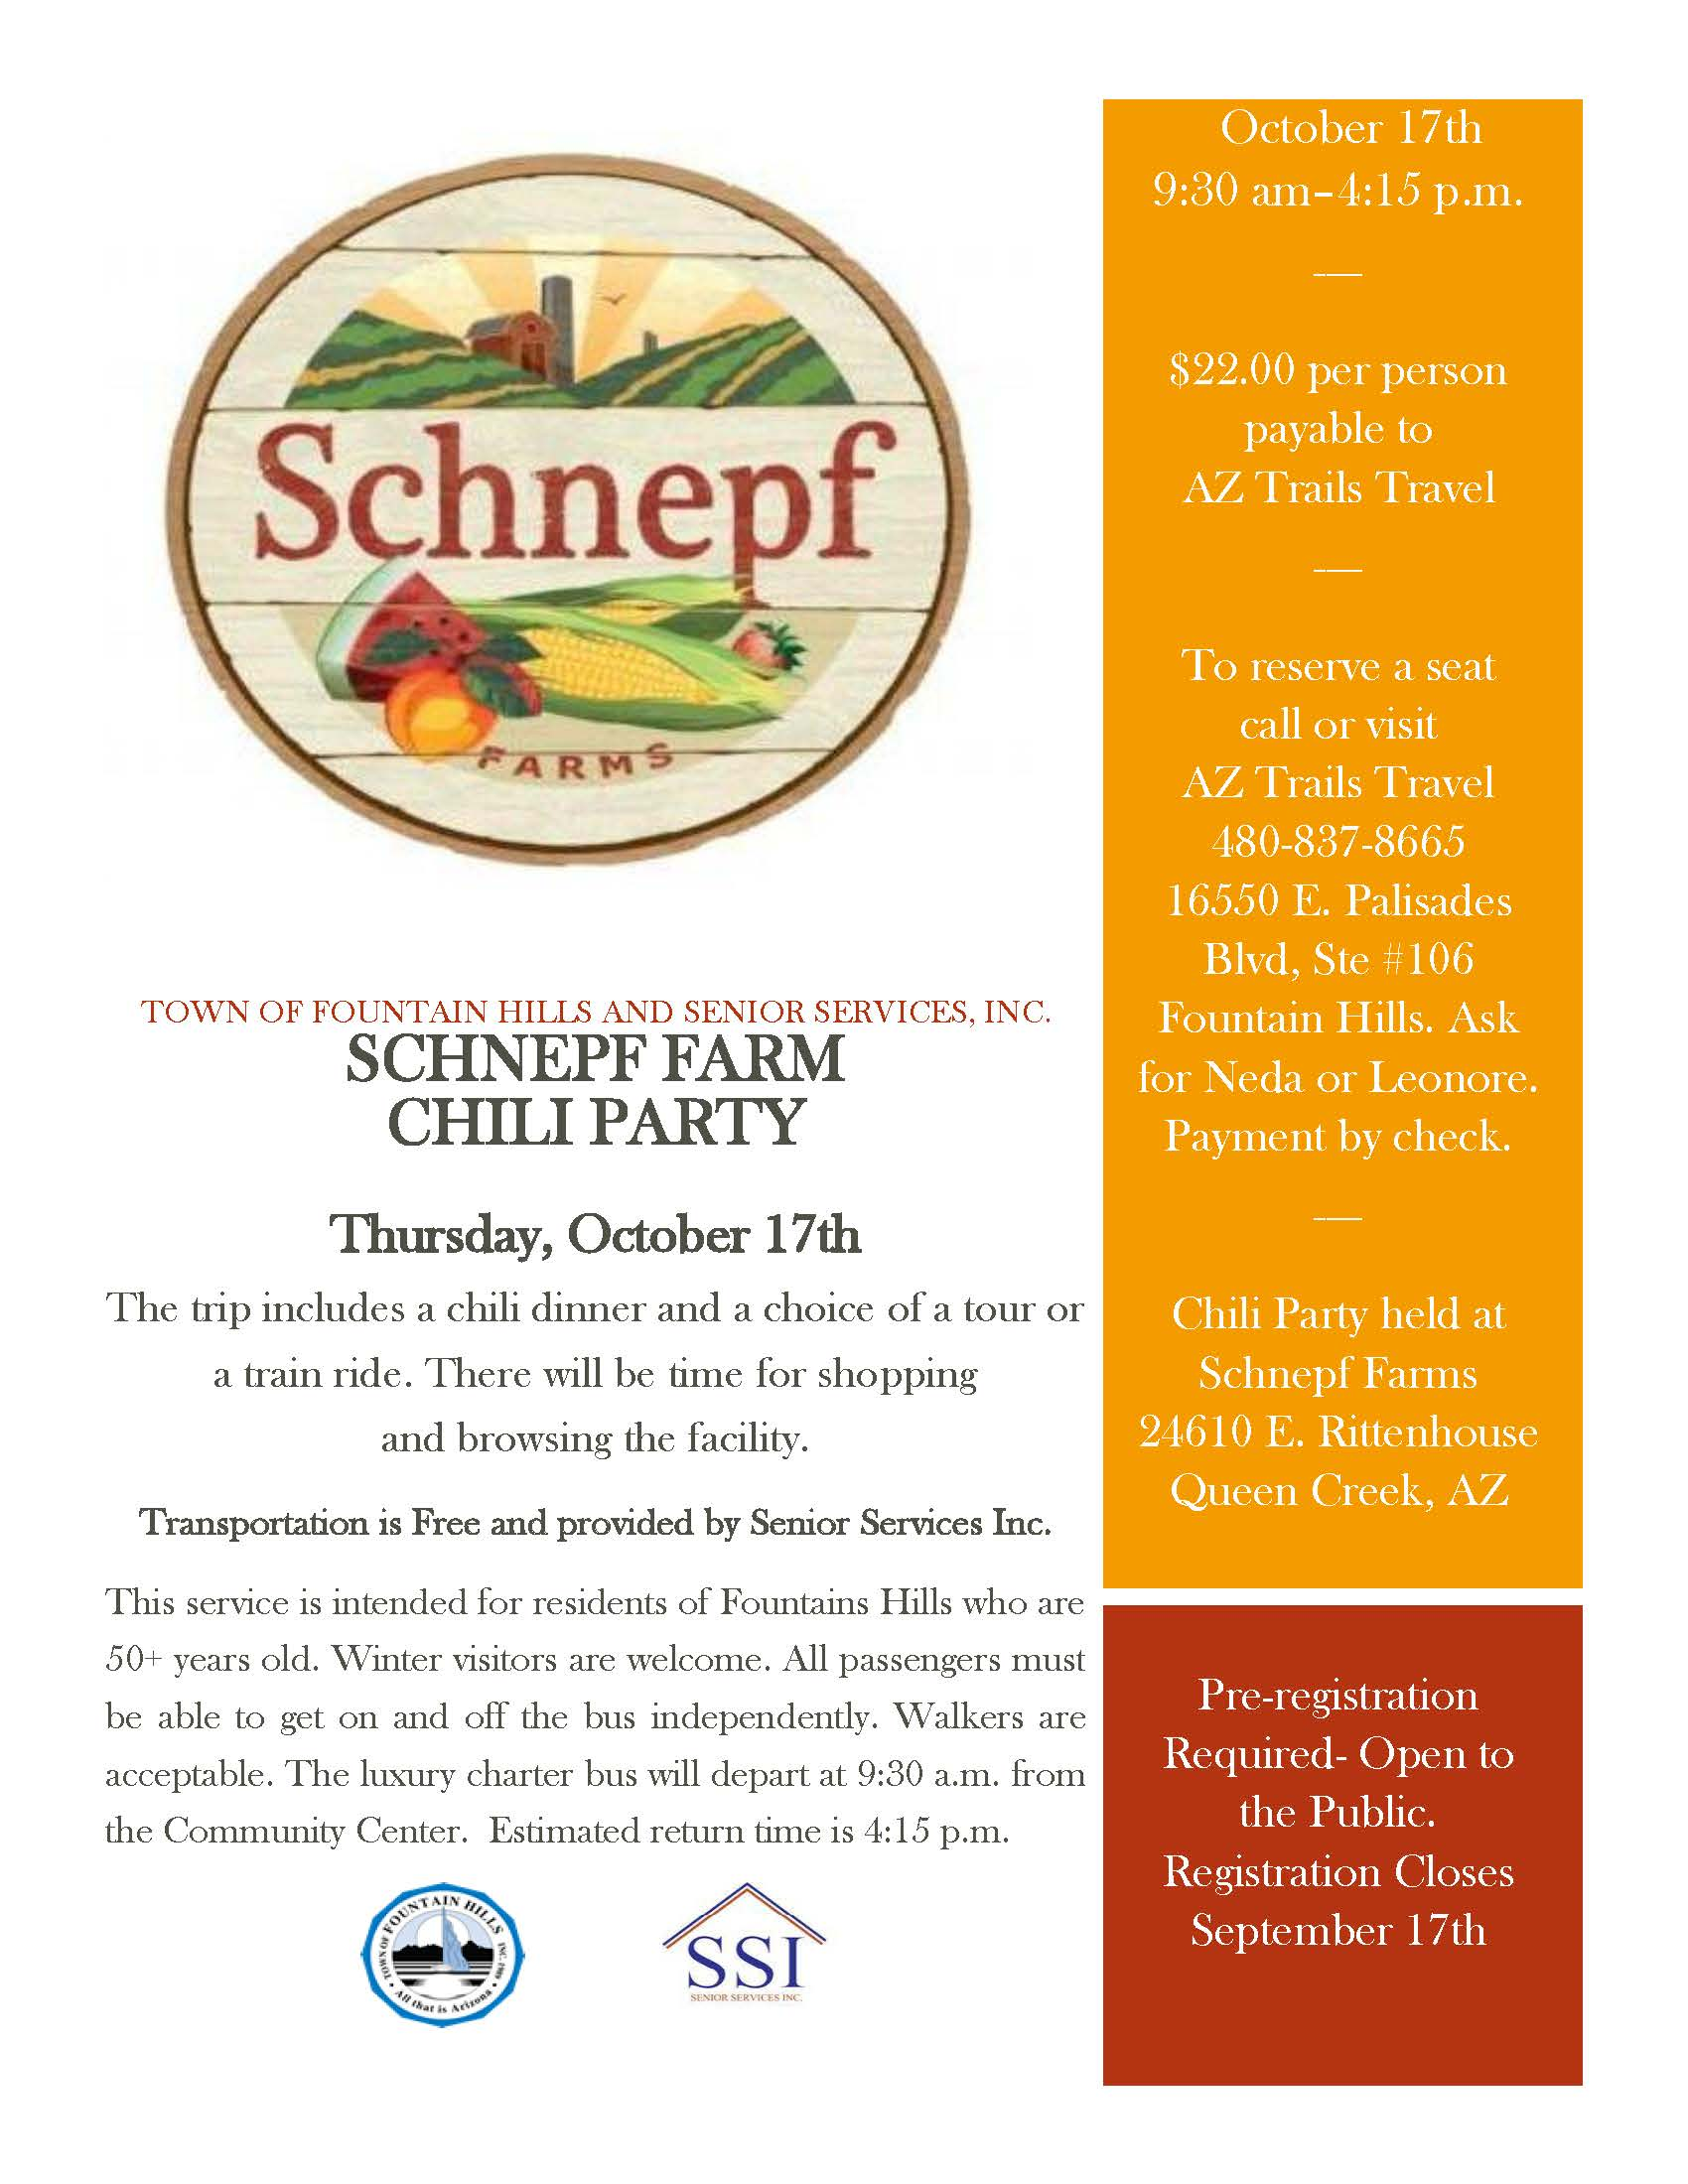 Schnepf Farms Trip Flyer